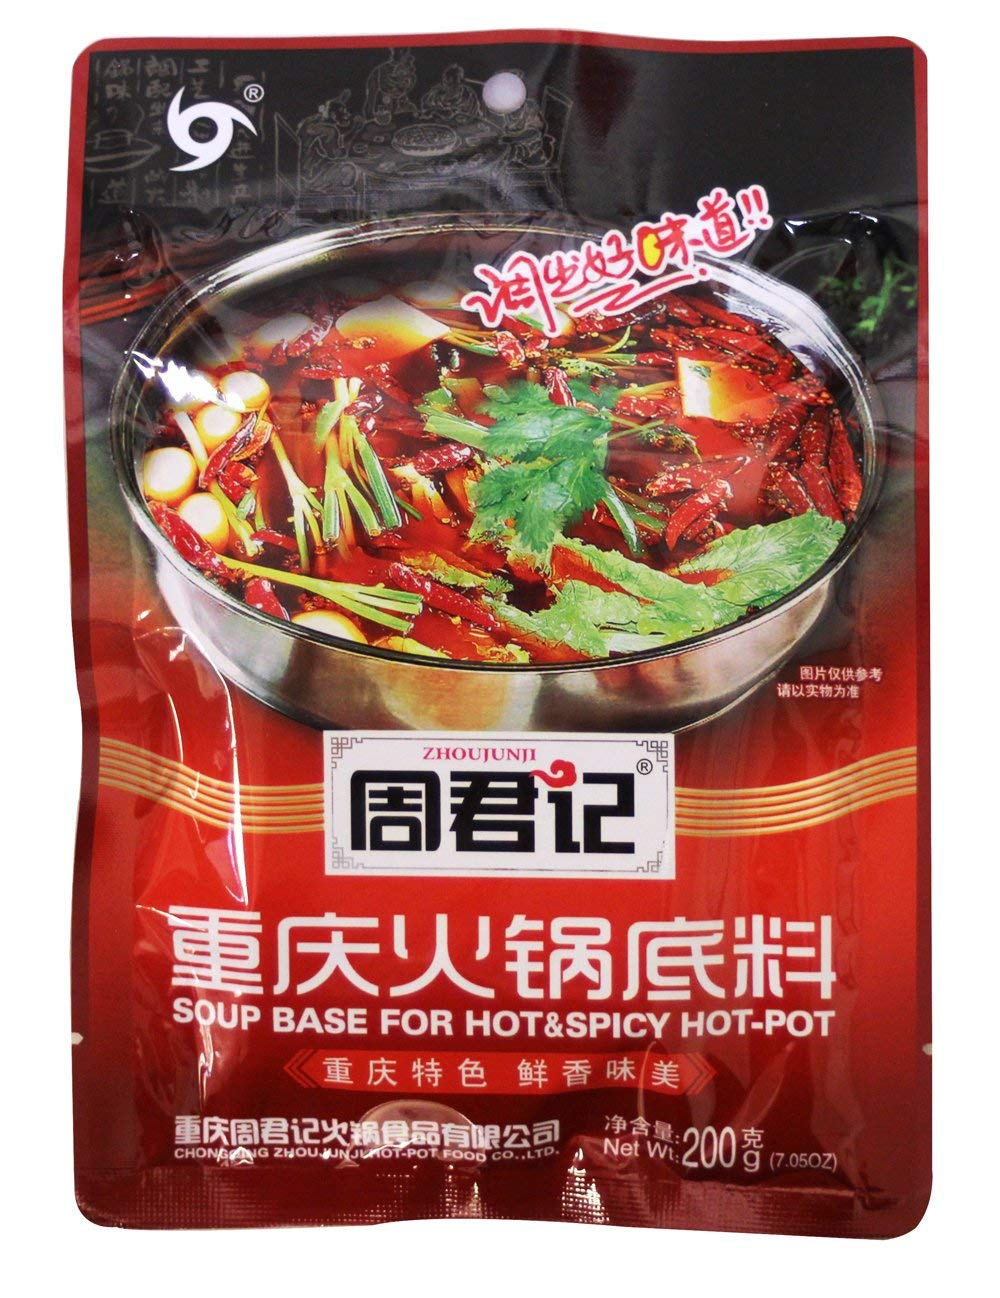 ZHOUJUNJI Hot & Spicy Hot-Pot Soup Base 200g / 重庆周君记 重庆火锅底料Easy Cook Chinese Cuisine Hot Pot Sauce Classic Chinese Food Family Reunion